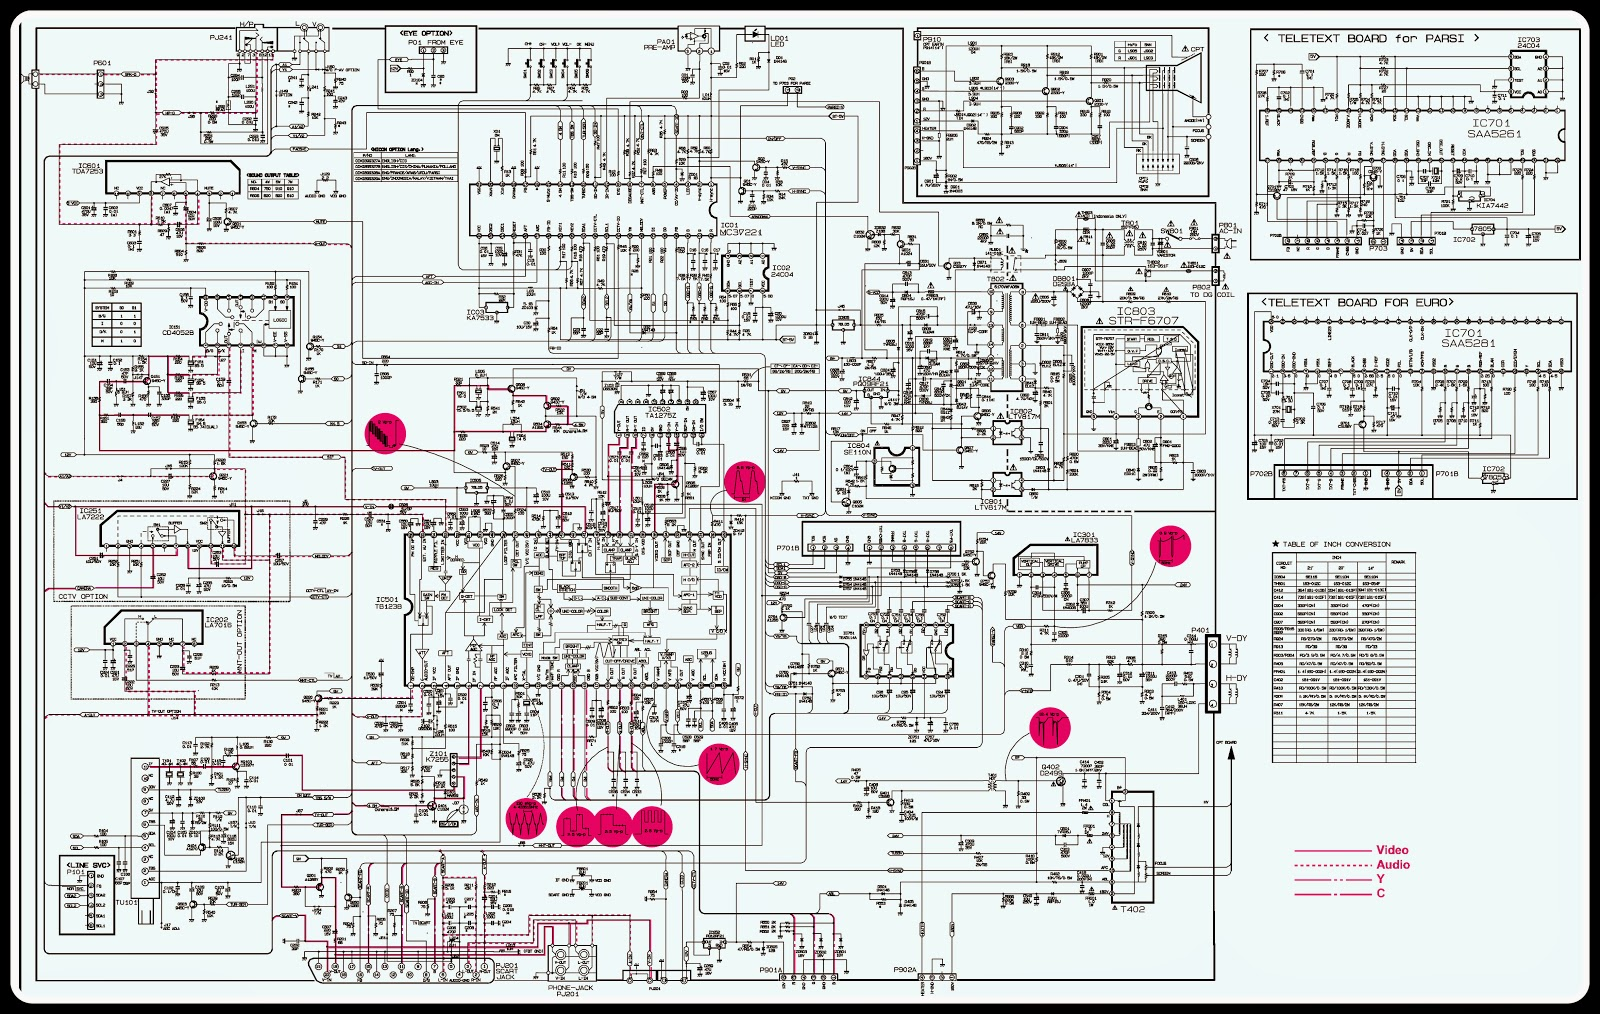 lg%2Bcrt%2Btv.bmp lg cf20f schematic (circuit diagram) 20 inch crt tv electro help lg wiring diagrams at mifinder.co